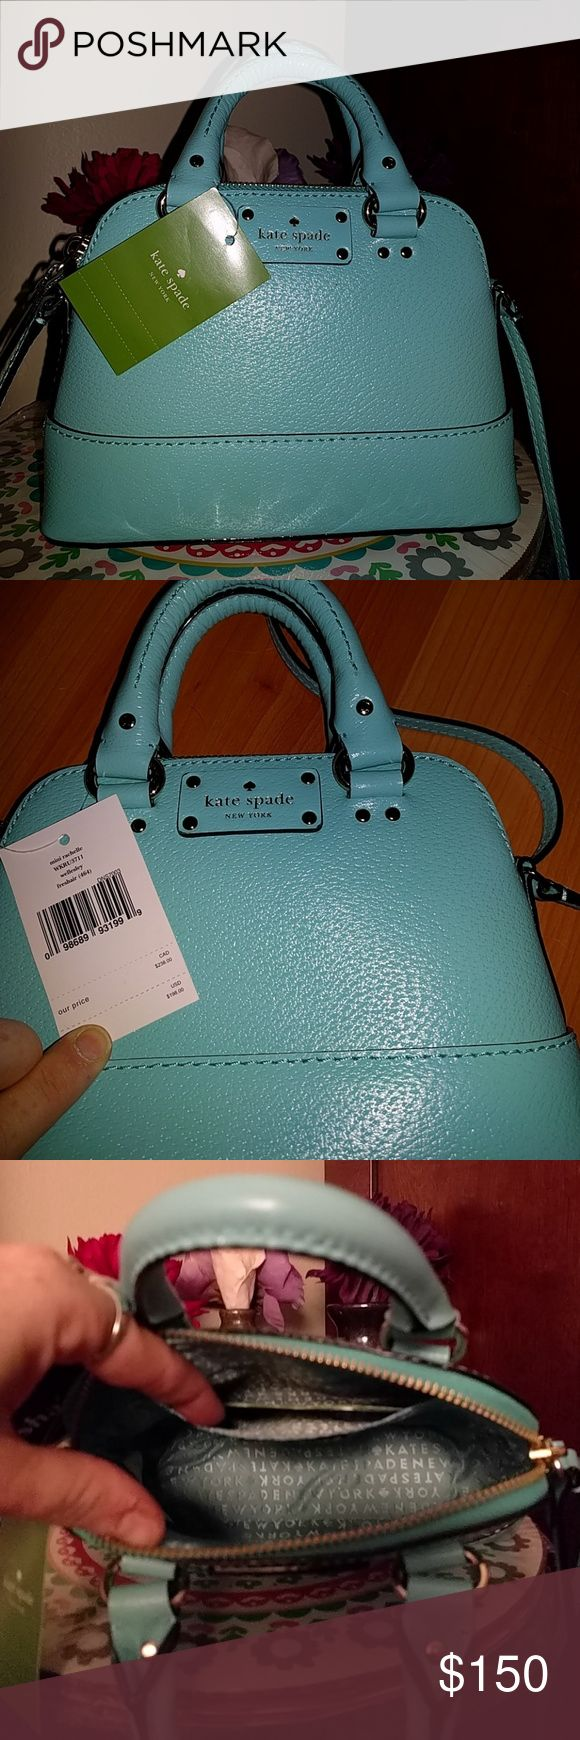 """BNWT 100% authentic Kate Spade handbag For sale is a BNWT authentic Kate Spade """"mini rachelle"""" handbag in the color """"wellesley fresh air  #464, as seen on the tag in picture 2. In picture 4, you can see that the handbag also a has an adjustable shoulder strap,  that enables you to either be use it on your shoulder or to make the purse a crossbody. Pic 4 also just shows what came inside the handbag. kate spade Bags Mini Bags"""